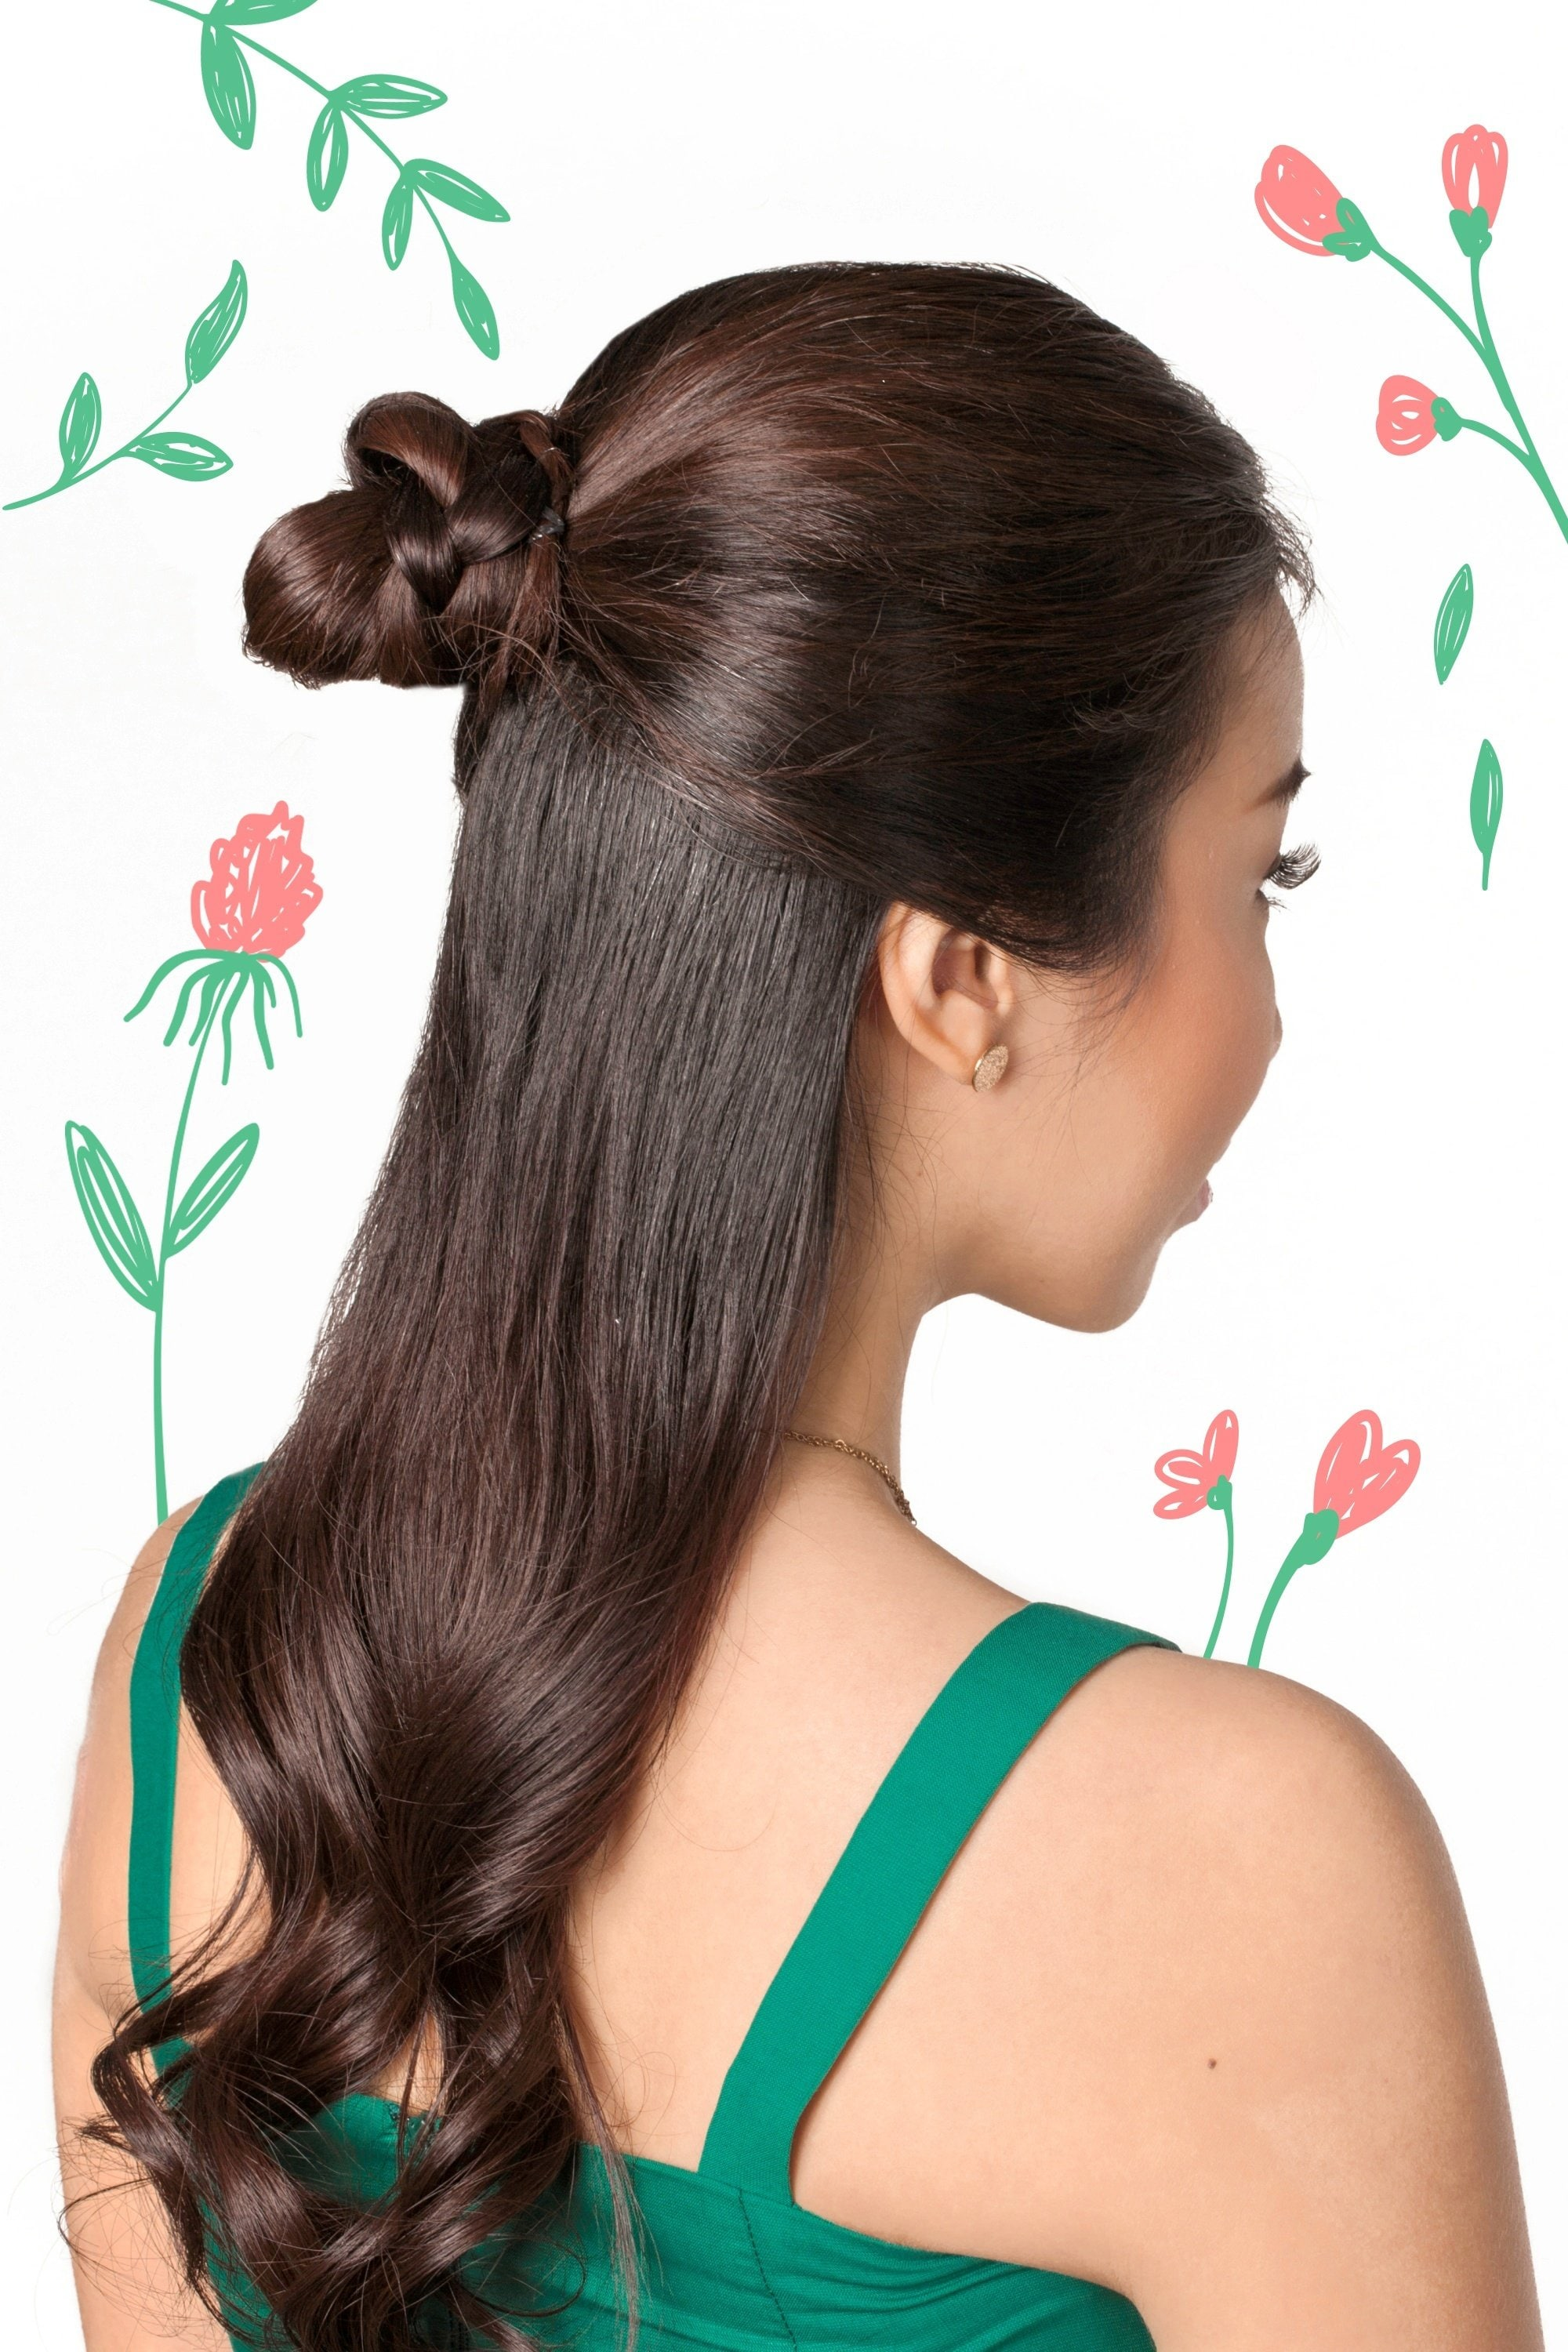 Flores De Mayo Hairstyles: Back shot of Asian woman with long dark hair in half updo with bun